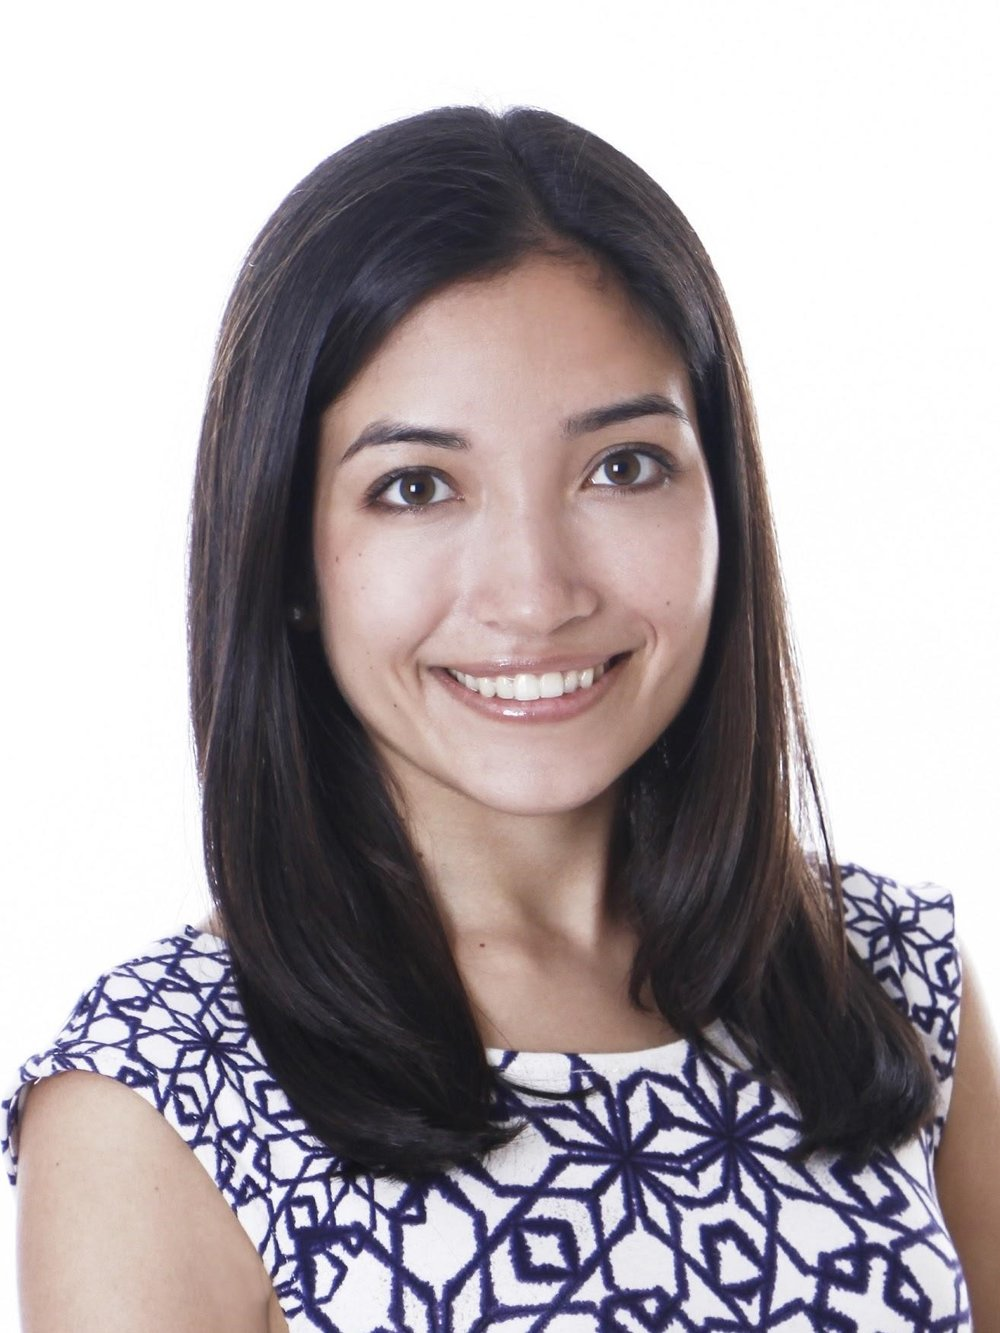 Jennifer Liu - Jennifer Liu graduated from Princeton in 2016 and served on the CS-ICC as Head of Communications during her junior year and Co-Chair during her senior year. She co-organized the 3rd annual TruckFest, which raised over $25,000 that year. While at Princeton, Jennifer was a member of the Student Volunteers Council (SVC) board. She also co-founded LEAP (Learning Enrichment in the Arts Program), an SVC group that holds weekly art classes for underprivileged students in Trenton. Jennifer wrote her senior thesis on service learning at Ivy League and its impact on social awareness. She recently earned a Masters in Education at the Harvard Graduate School of Education and currently teaches 7th grade math in New York.